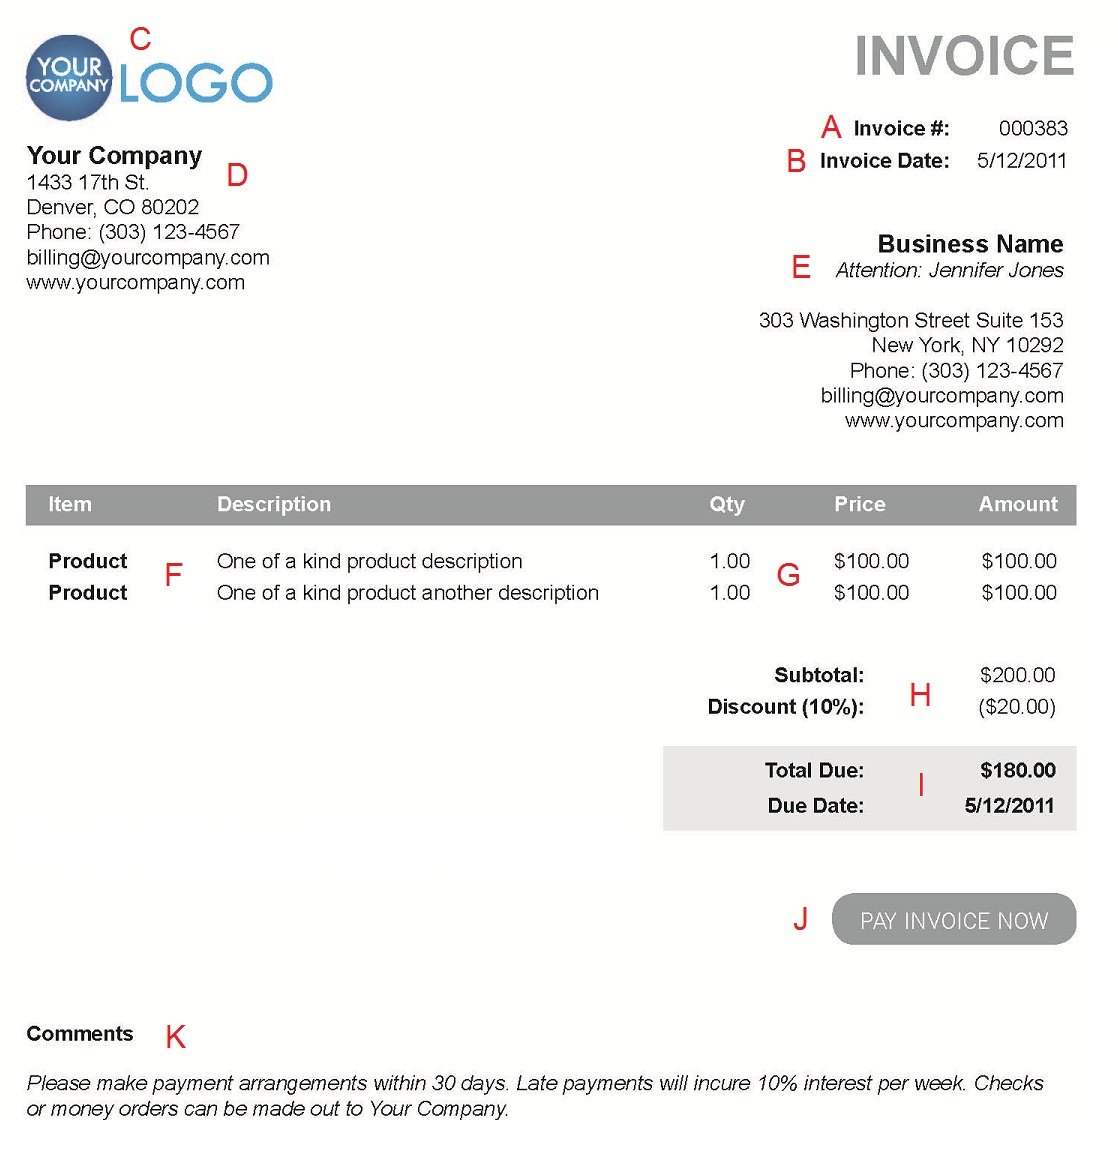 Centralasianshepherdus  Surprising The  Different Sections Of An Electronic Payment Invoice With Exquisite A  With Alluring Quickbooks Receipts Also Broward County Business Tax Receipt In Addition Receipt In Italian And Sports Authority Receipt As Well As How To Fill Out A Certified Mail Receipt Additionally Tracking Number On Usps Receipt From Paysimplecom With Centralasianshepherdus  Exquisite The  Different Sections Of An Electronic Payment Invoice With Alluring A  And Surprising Quickbooks Receipts Also Broward County Business Tax Receipt In Addition Receipt In Italian From Paysimplecom